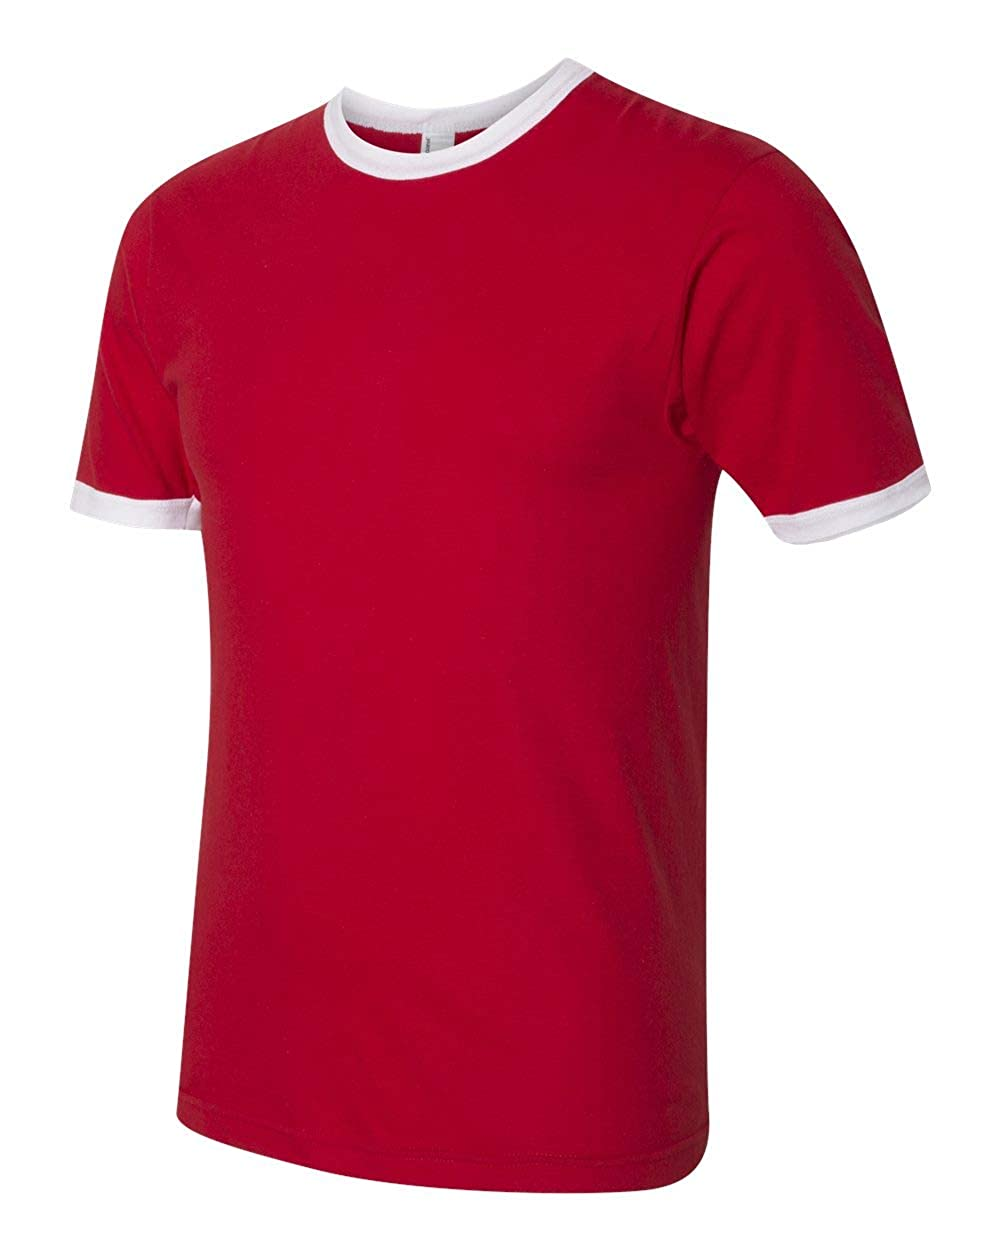 bf6d2668 Amazon.com: American Apparel Womens Fine Jersey Ringer T-Shirt (2410W):  Clothing